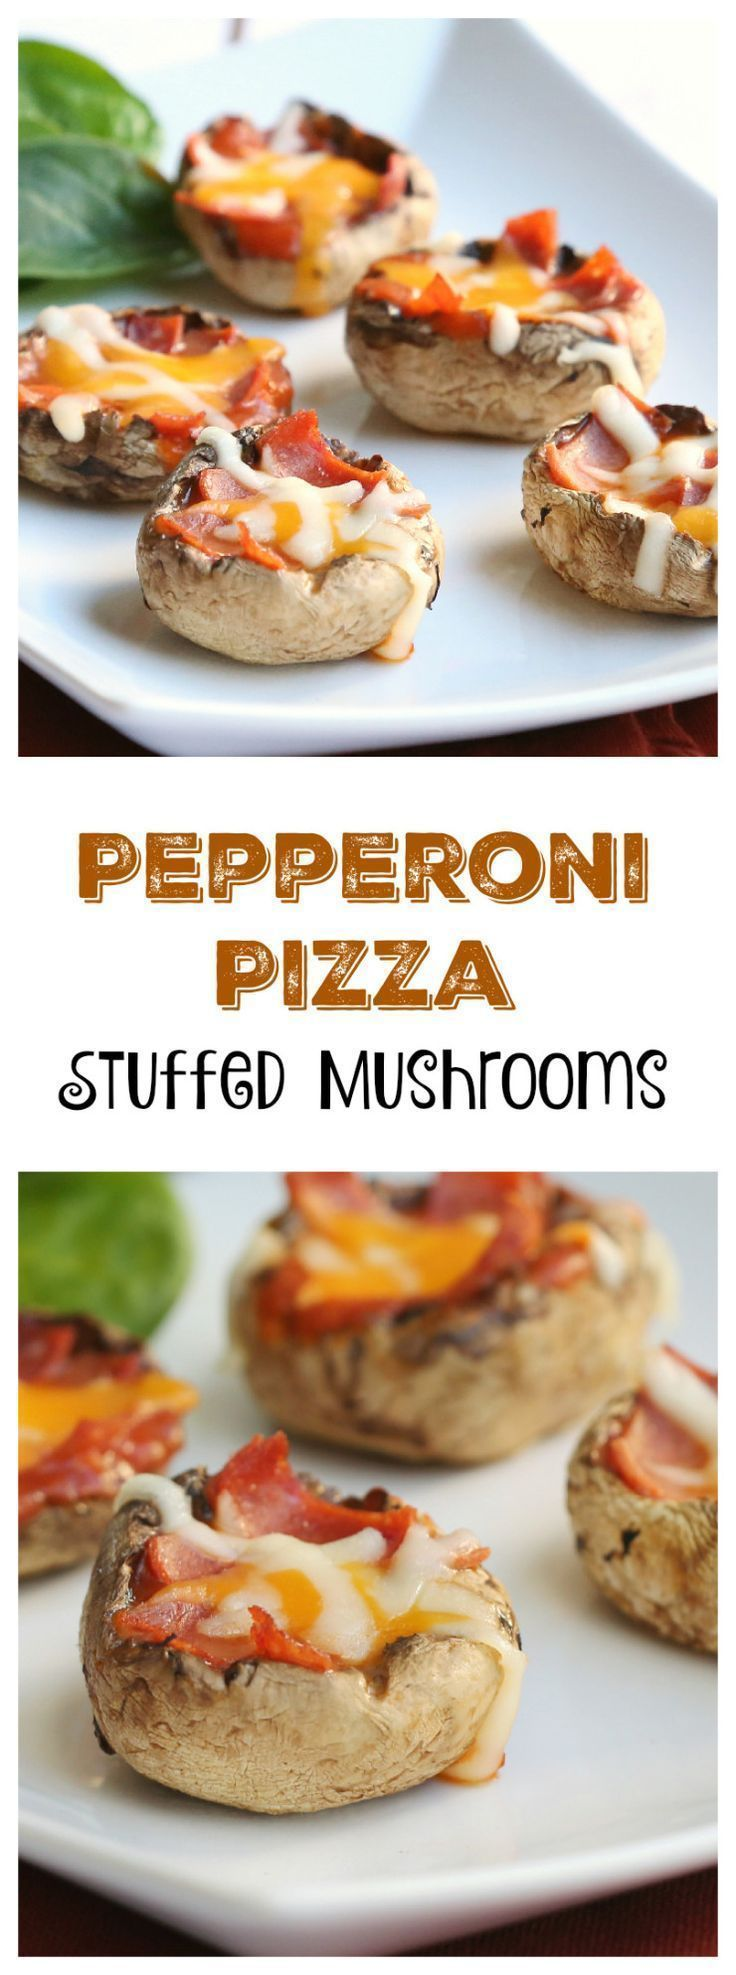 Easy hot appetizer recipe - Pepperoni Pizza Stuffed Mushrooms - requires few ingredients, is simple to make, and tastes great!